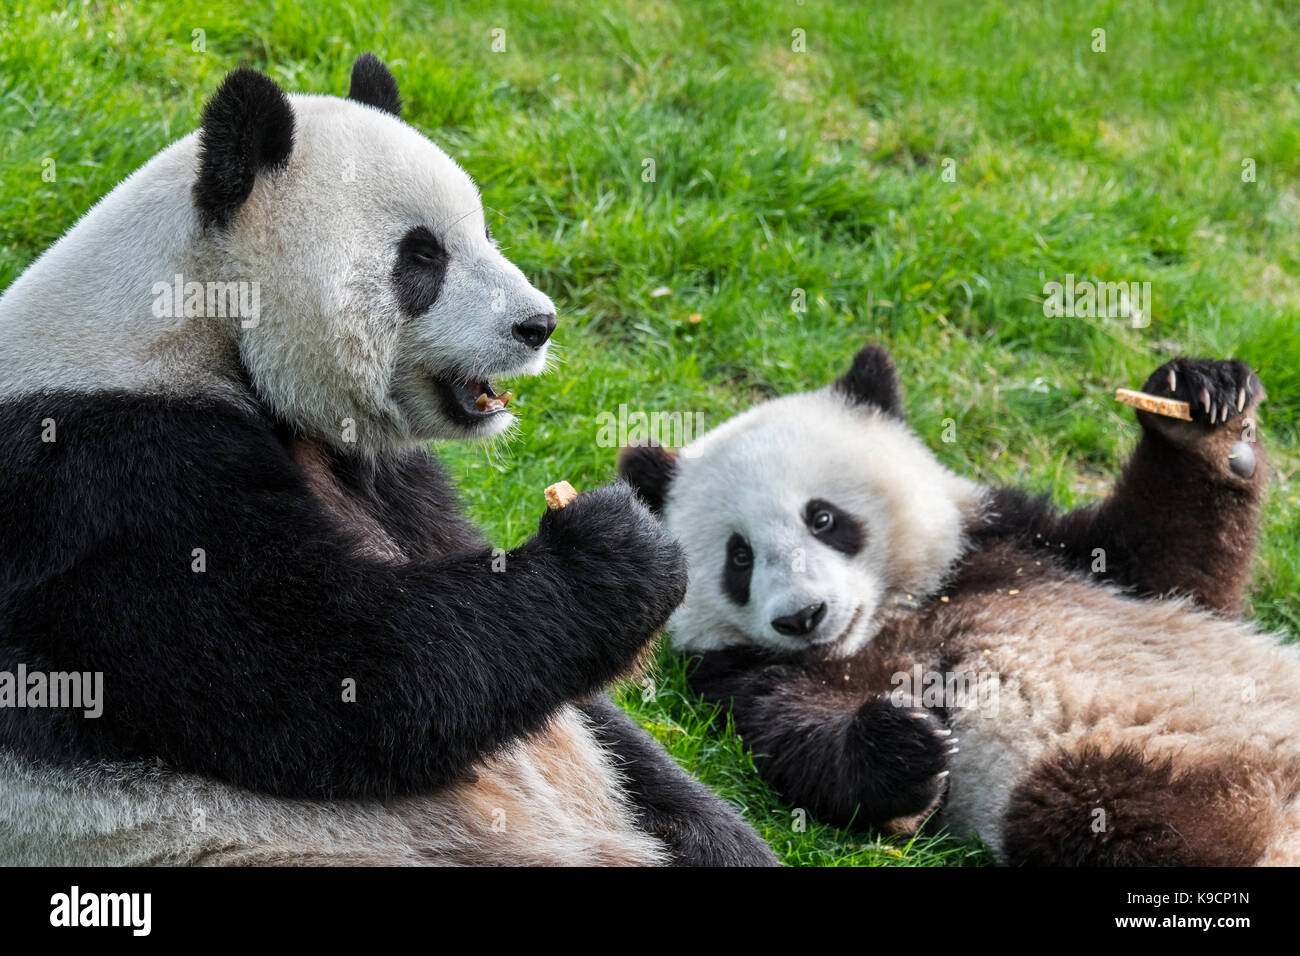 Giant panda (Ailuropoda melanoleuca) female with one-year old cub eating cookies in zoo - Stock Image